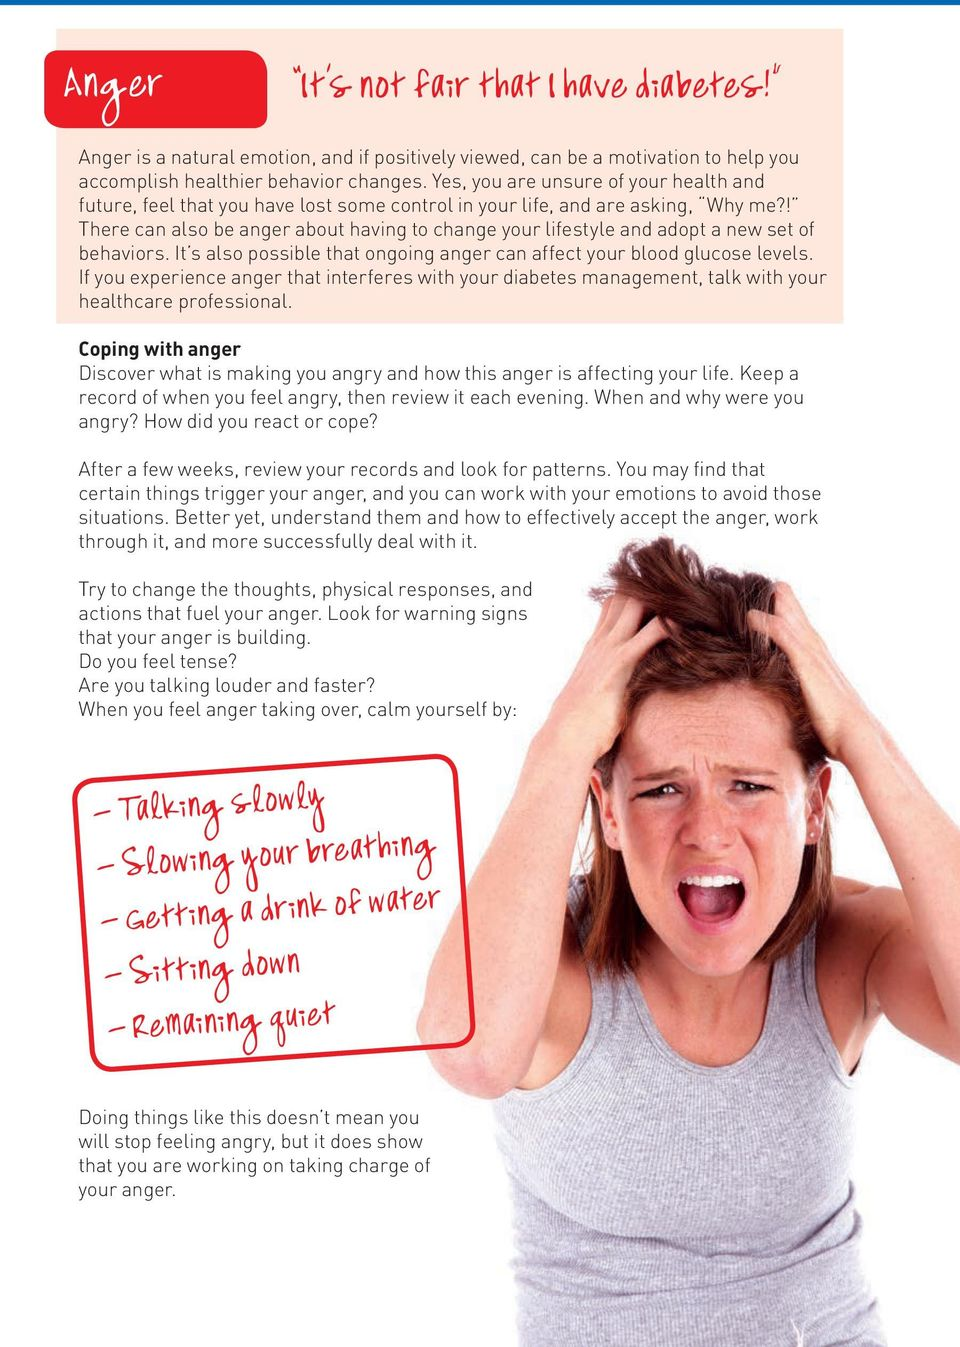 ! There can also be anger about having to change your lifestyle and adopt a new set of behaviors. It s also possible that ongoing anger can affect your blood glucose levels.